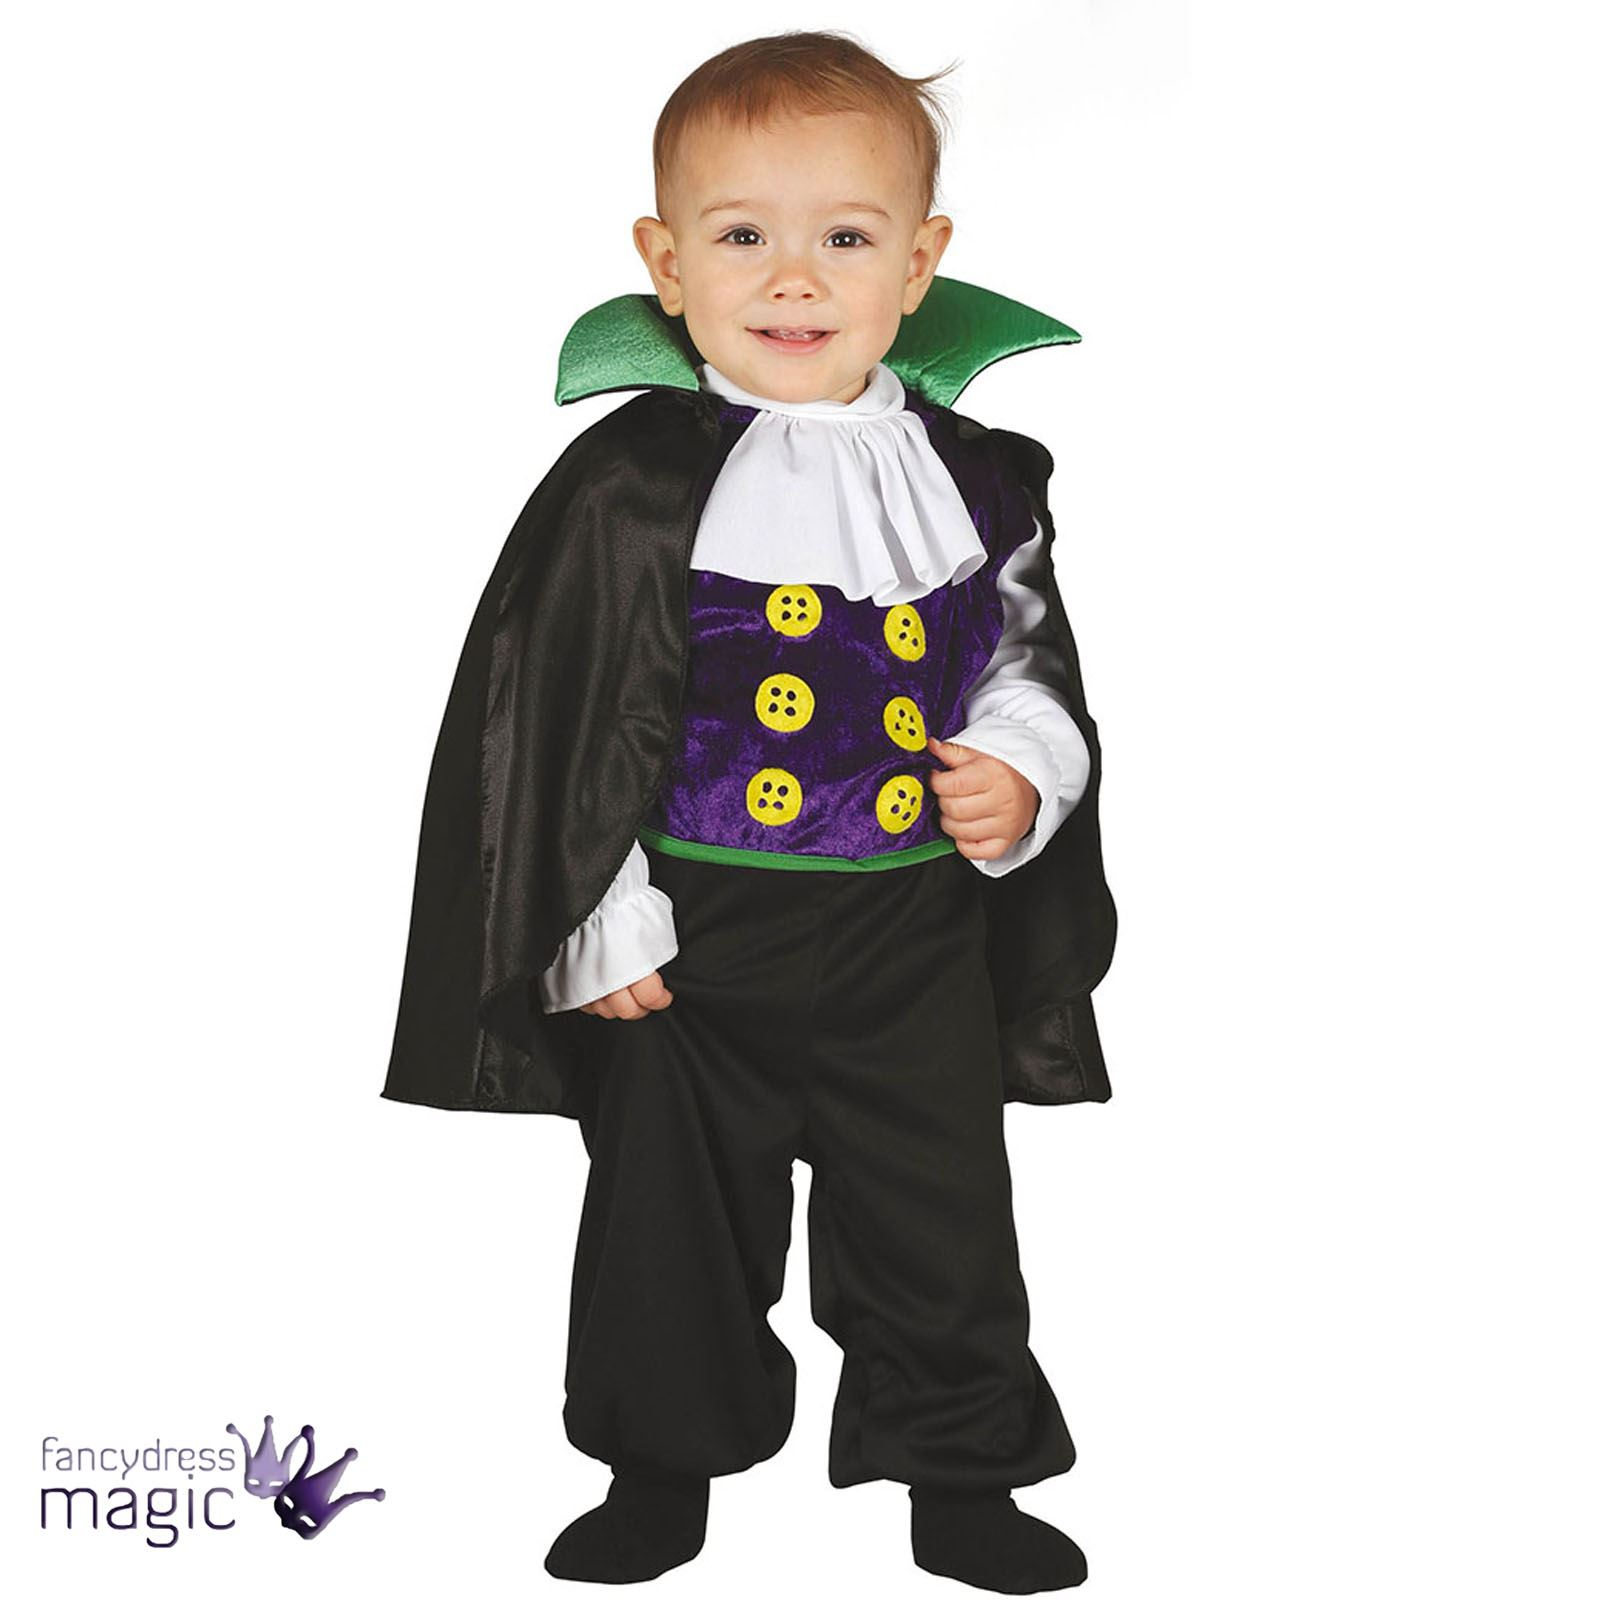 Boys Baby Toddler Halloween V&ire Dracula Fancy Dress Costume Outfit Cute Cape | eBay  sc 1 st  eBay & Boys Baby Toddler Halloween Vampire Dracula Fancy Dress Costume ...